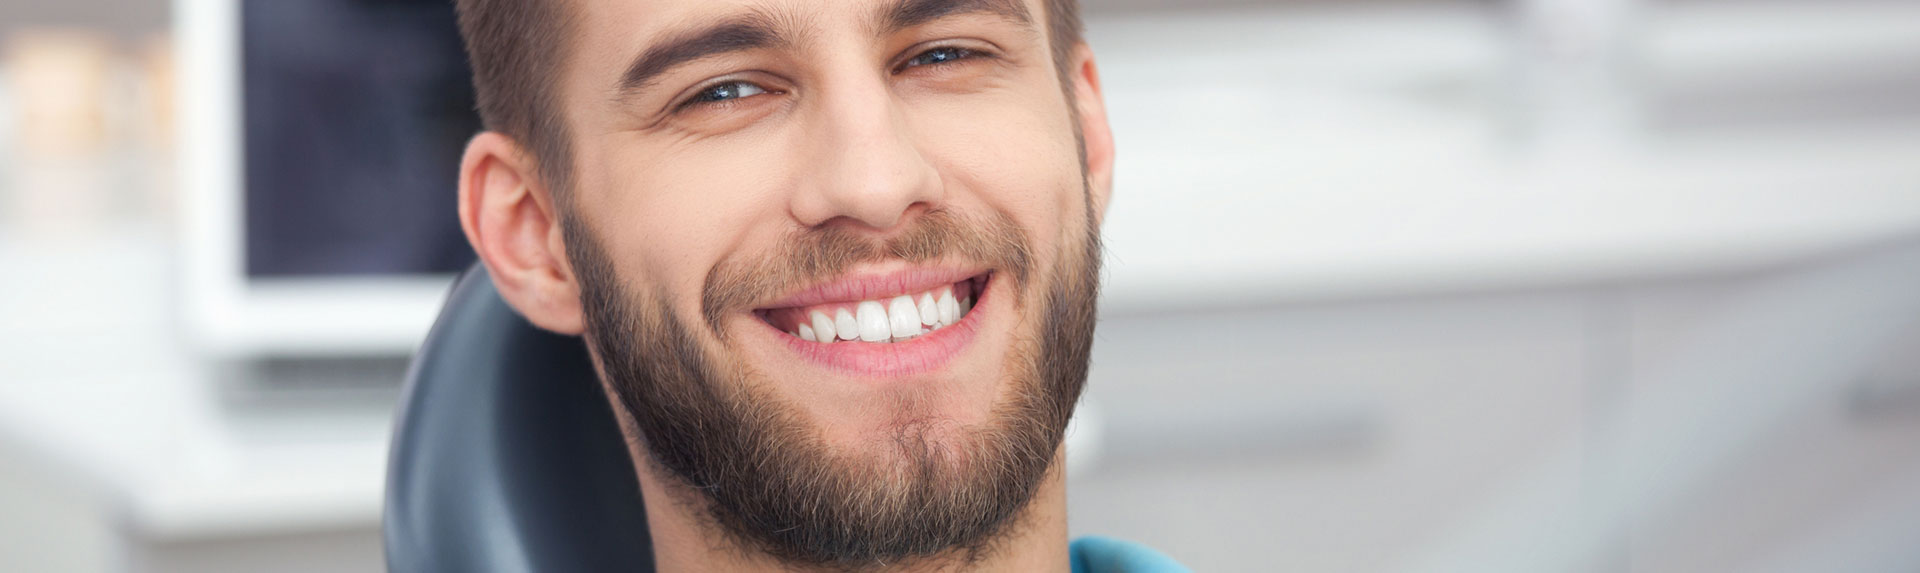 Smiling man sitting in the dental chair